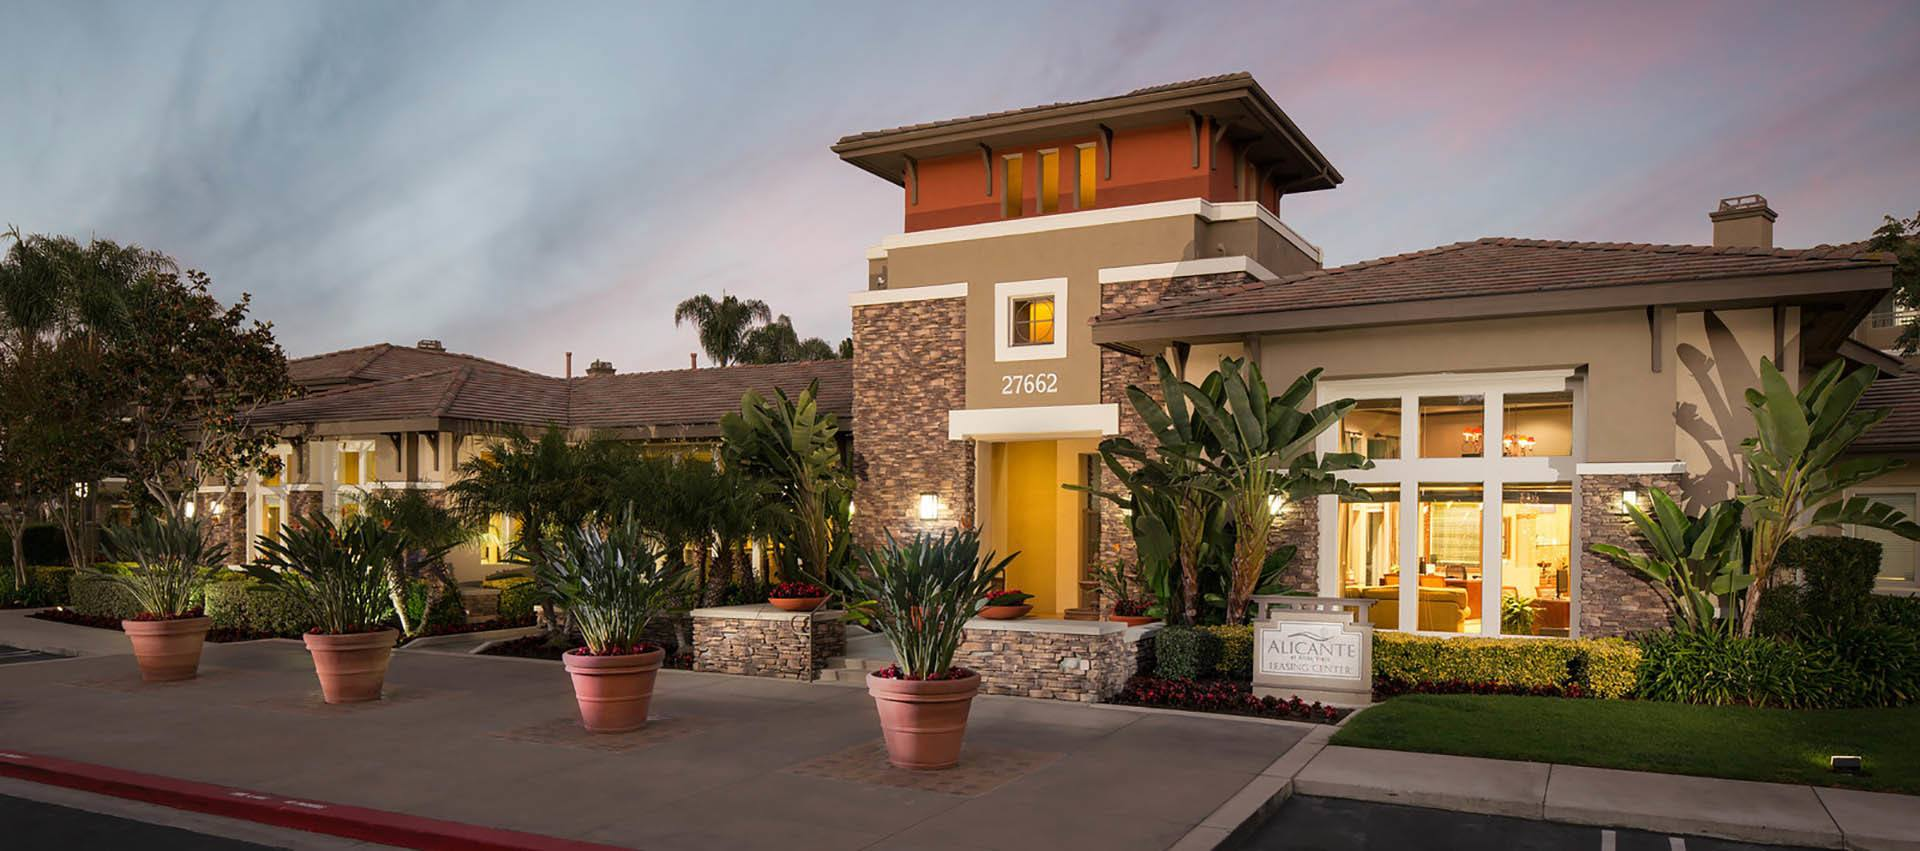 Your new home awaits you at Alicante Apartment Homes in Aliso Viejo, CA